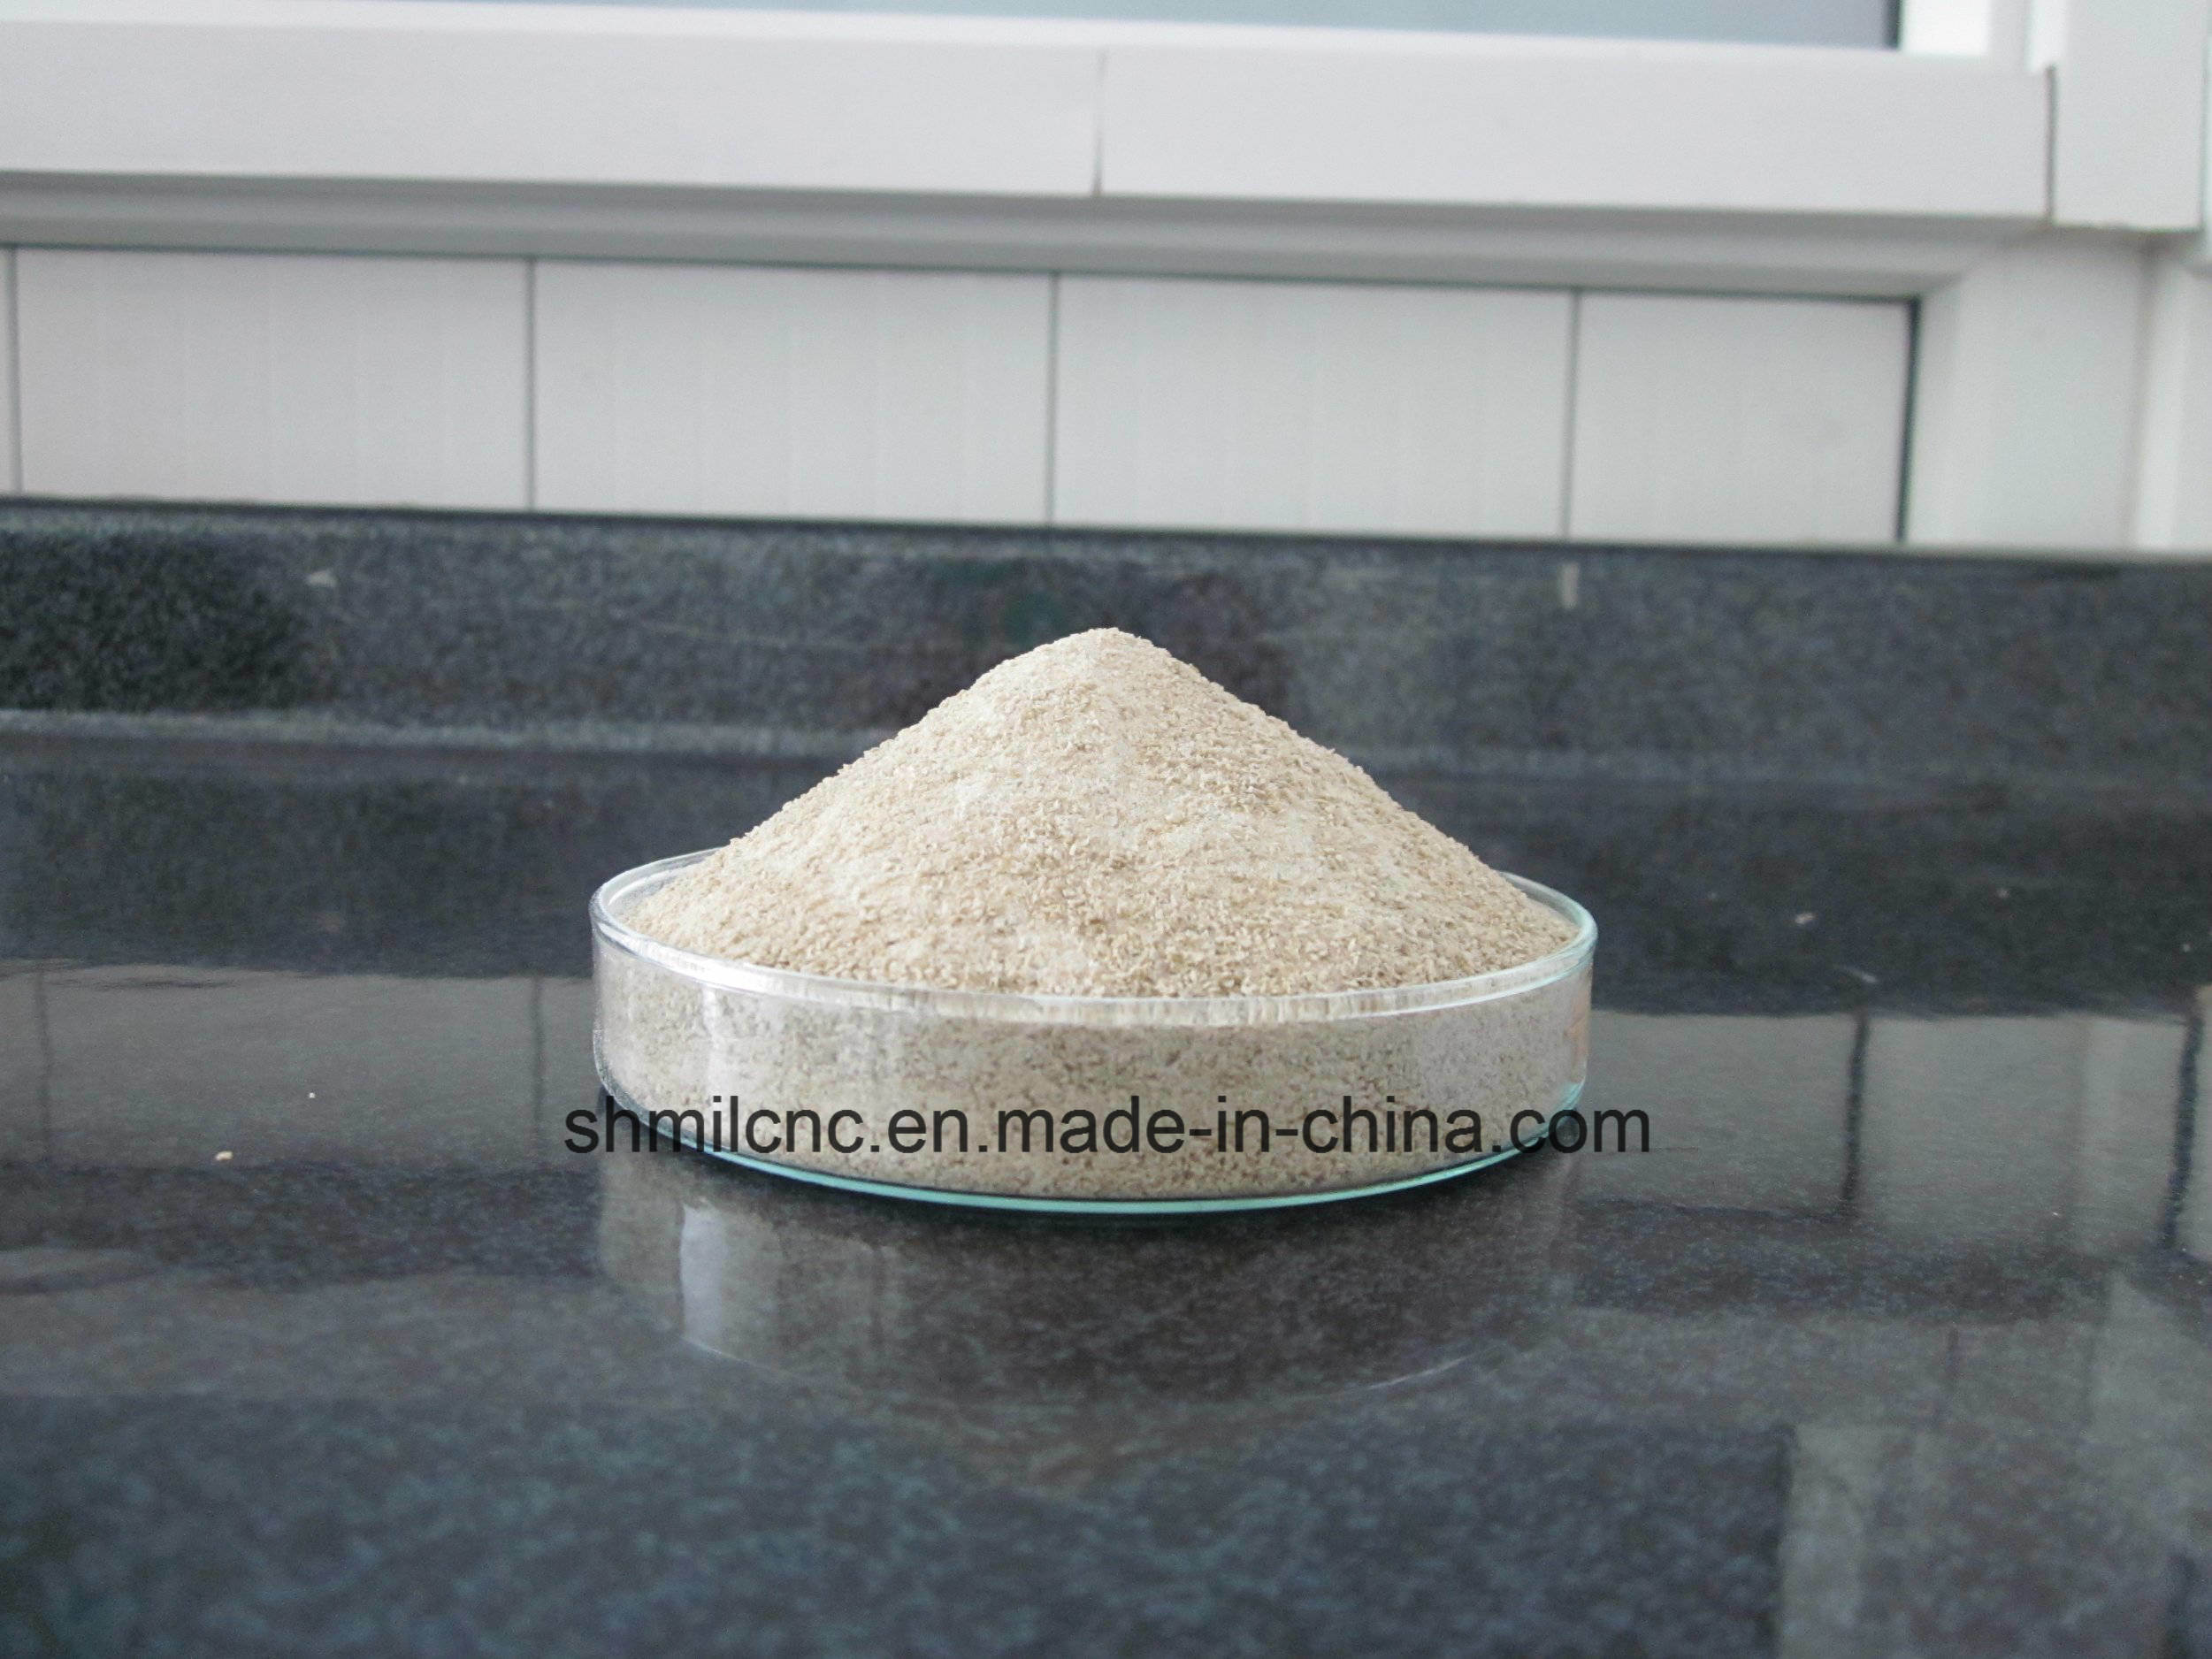 Printing Sodium Alginate, Textile Grade Alginate, Printing Thickener, Sodium Alginate